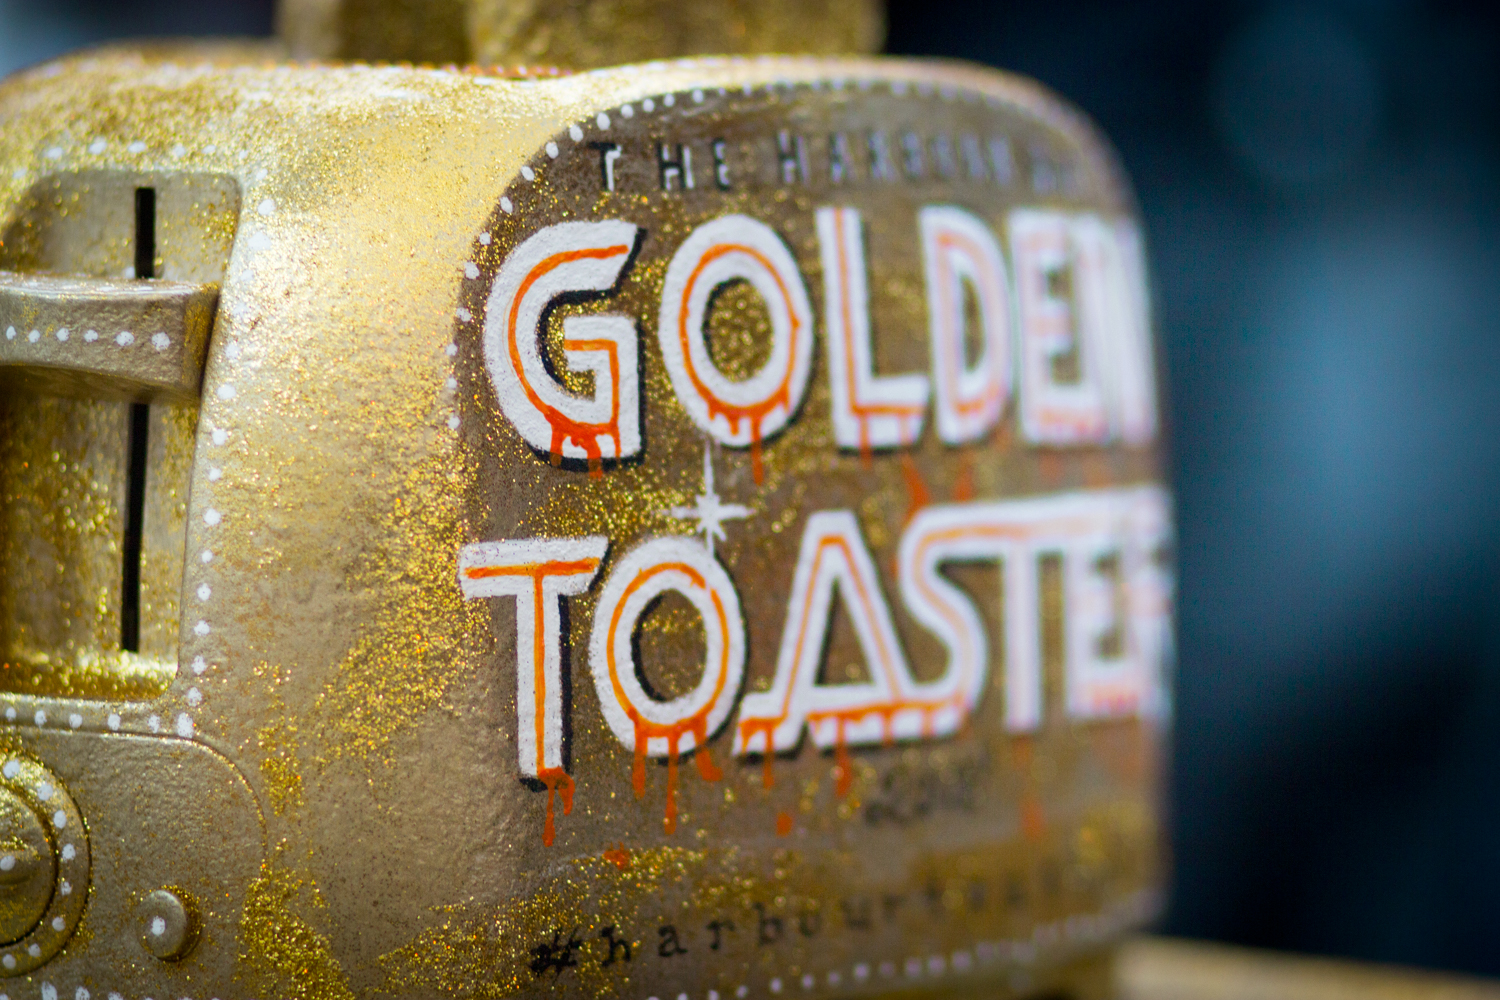 The Golden Toaster Award - awarded to the best Toastie in Bray